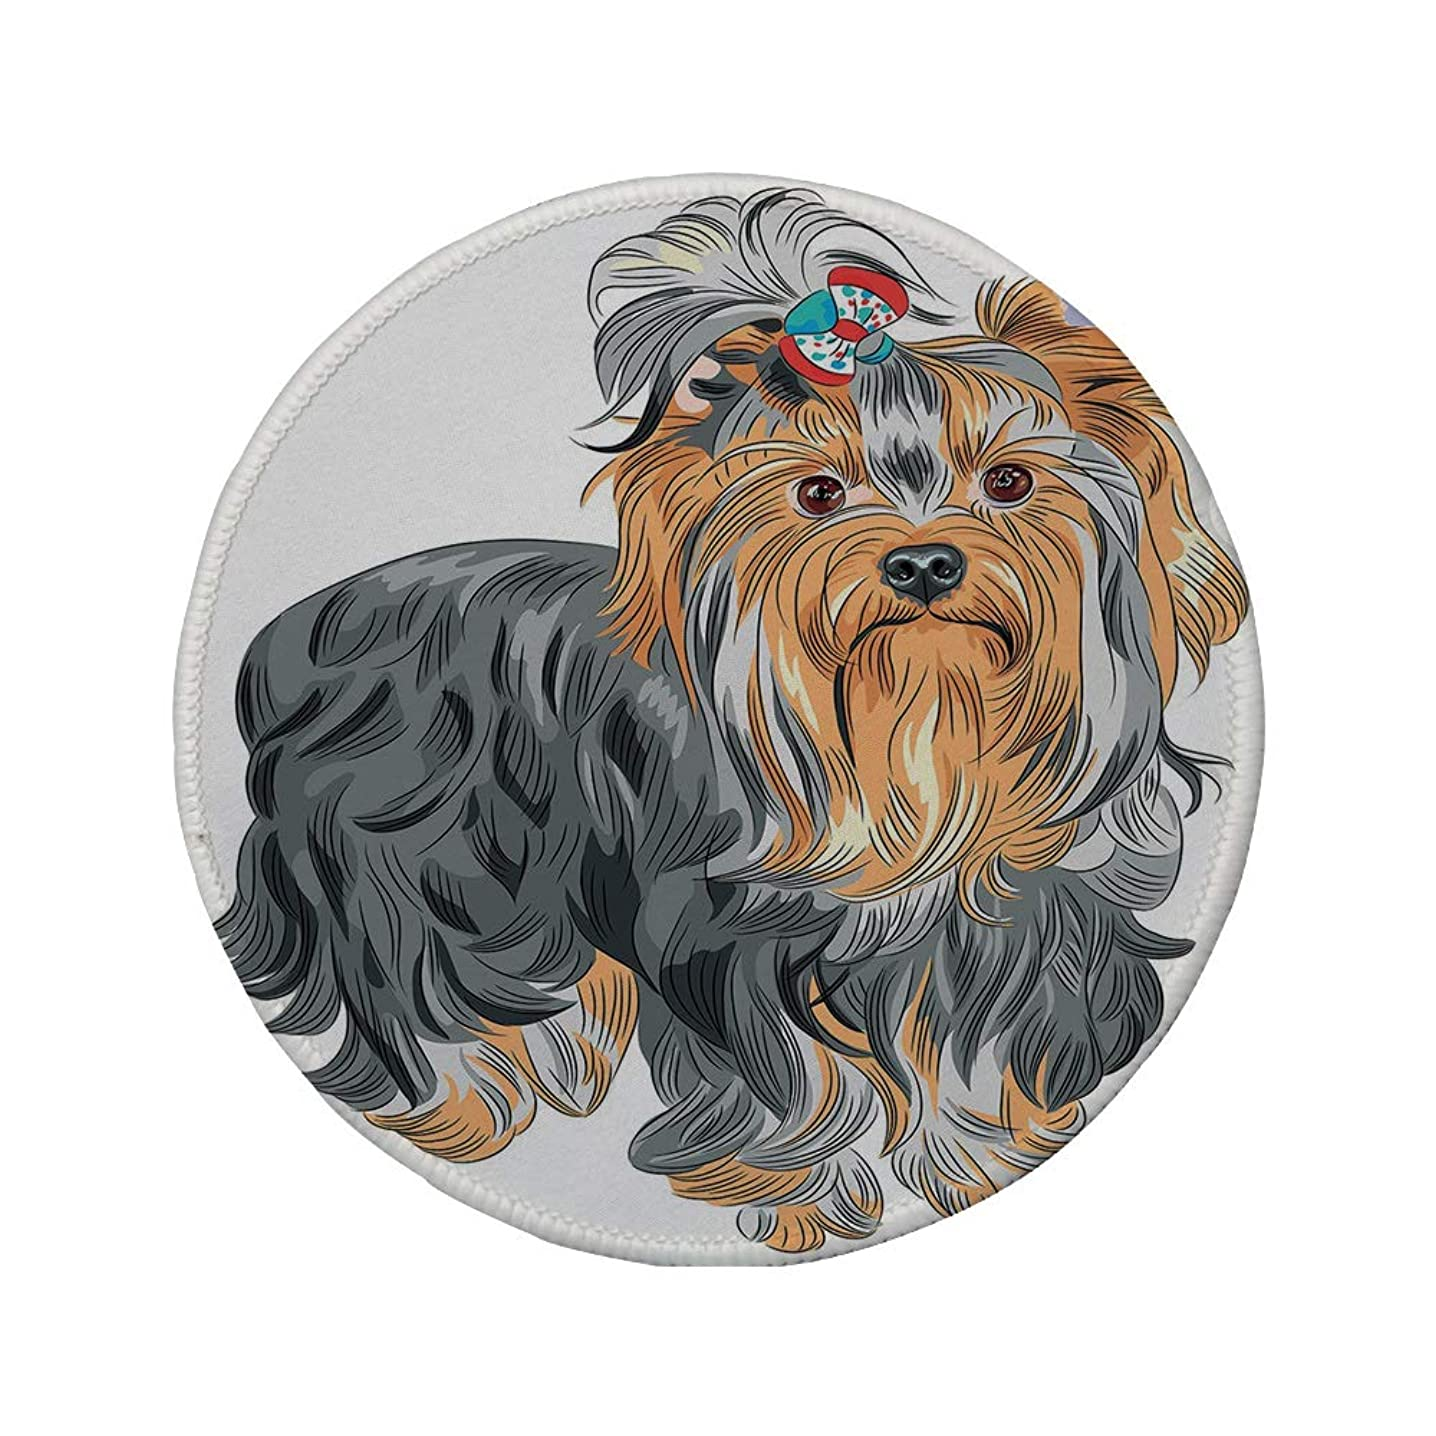 Non-Slip Rubber Round Mouse Pad,Yorkie,Terrier with Cute Bow on Head Colored Sketch Speckled Dog Lifelike Beast Yorkie,Grey Apricot,11.8